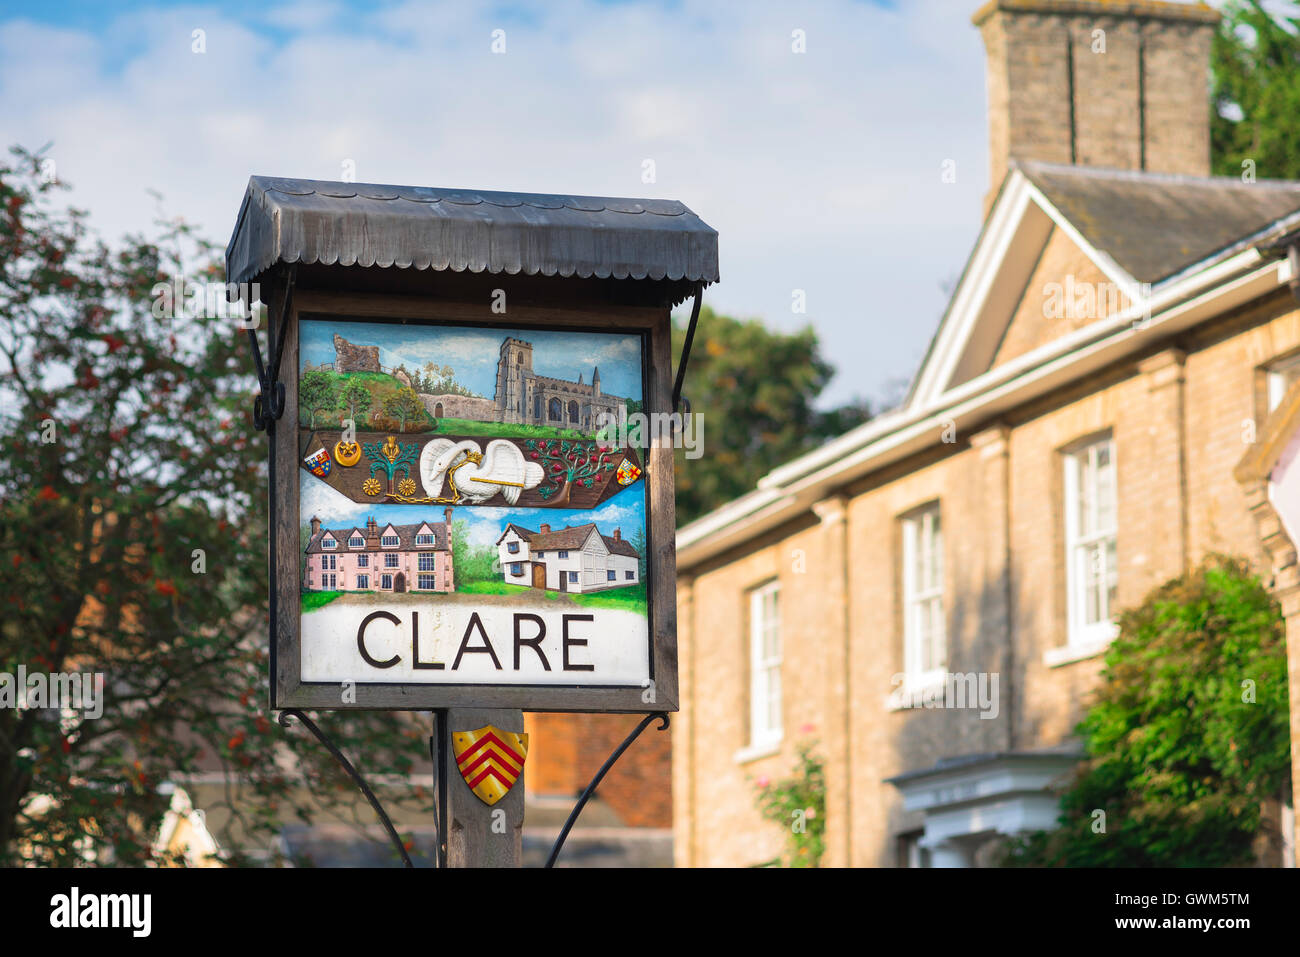 Clare Suffolk, an illustrated sign in the historic village of Clare in Suffolk, England, Babergh district, UK. - Stock Image